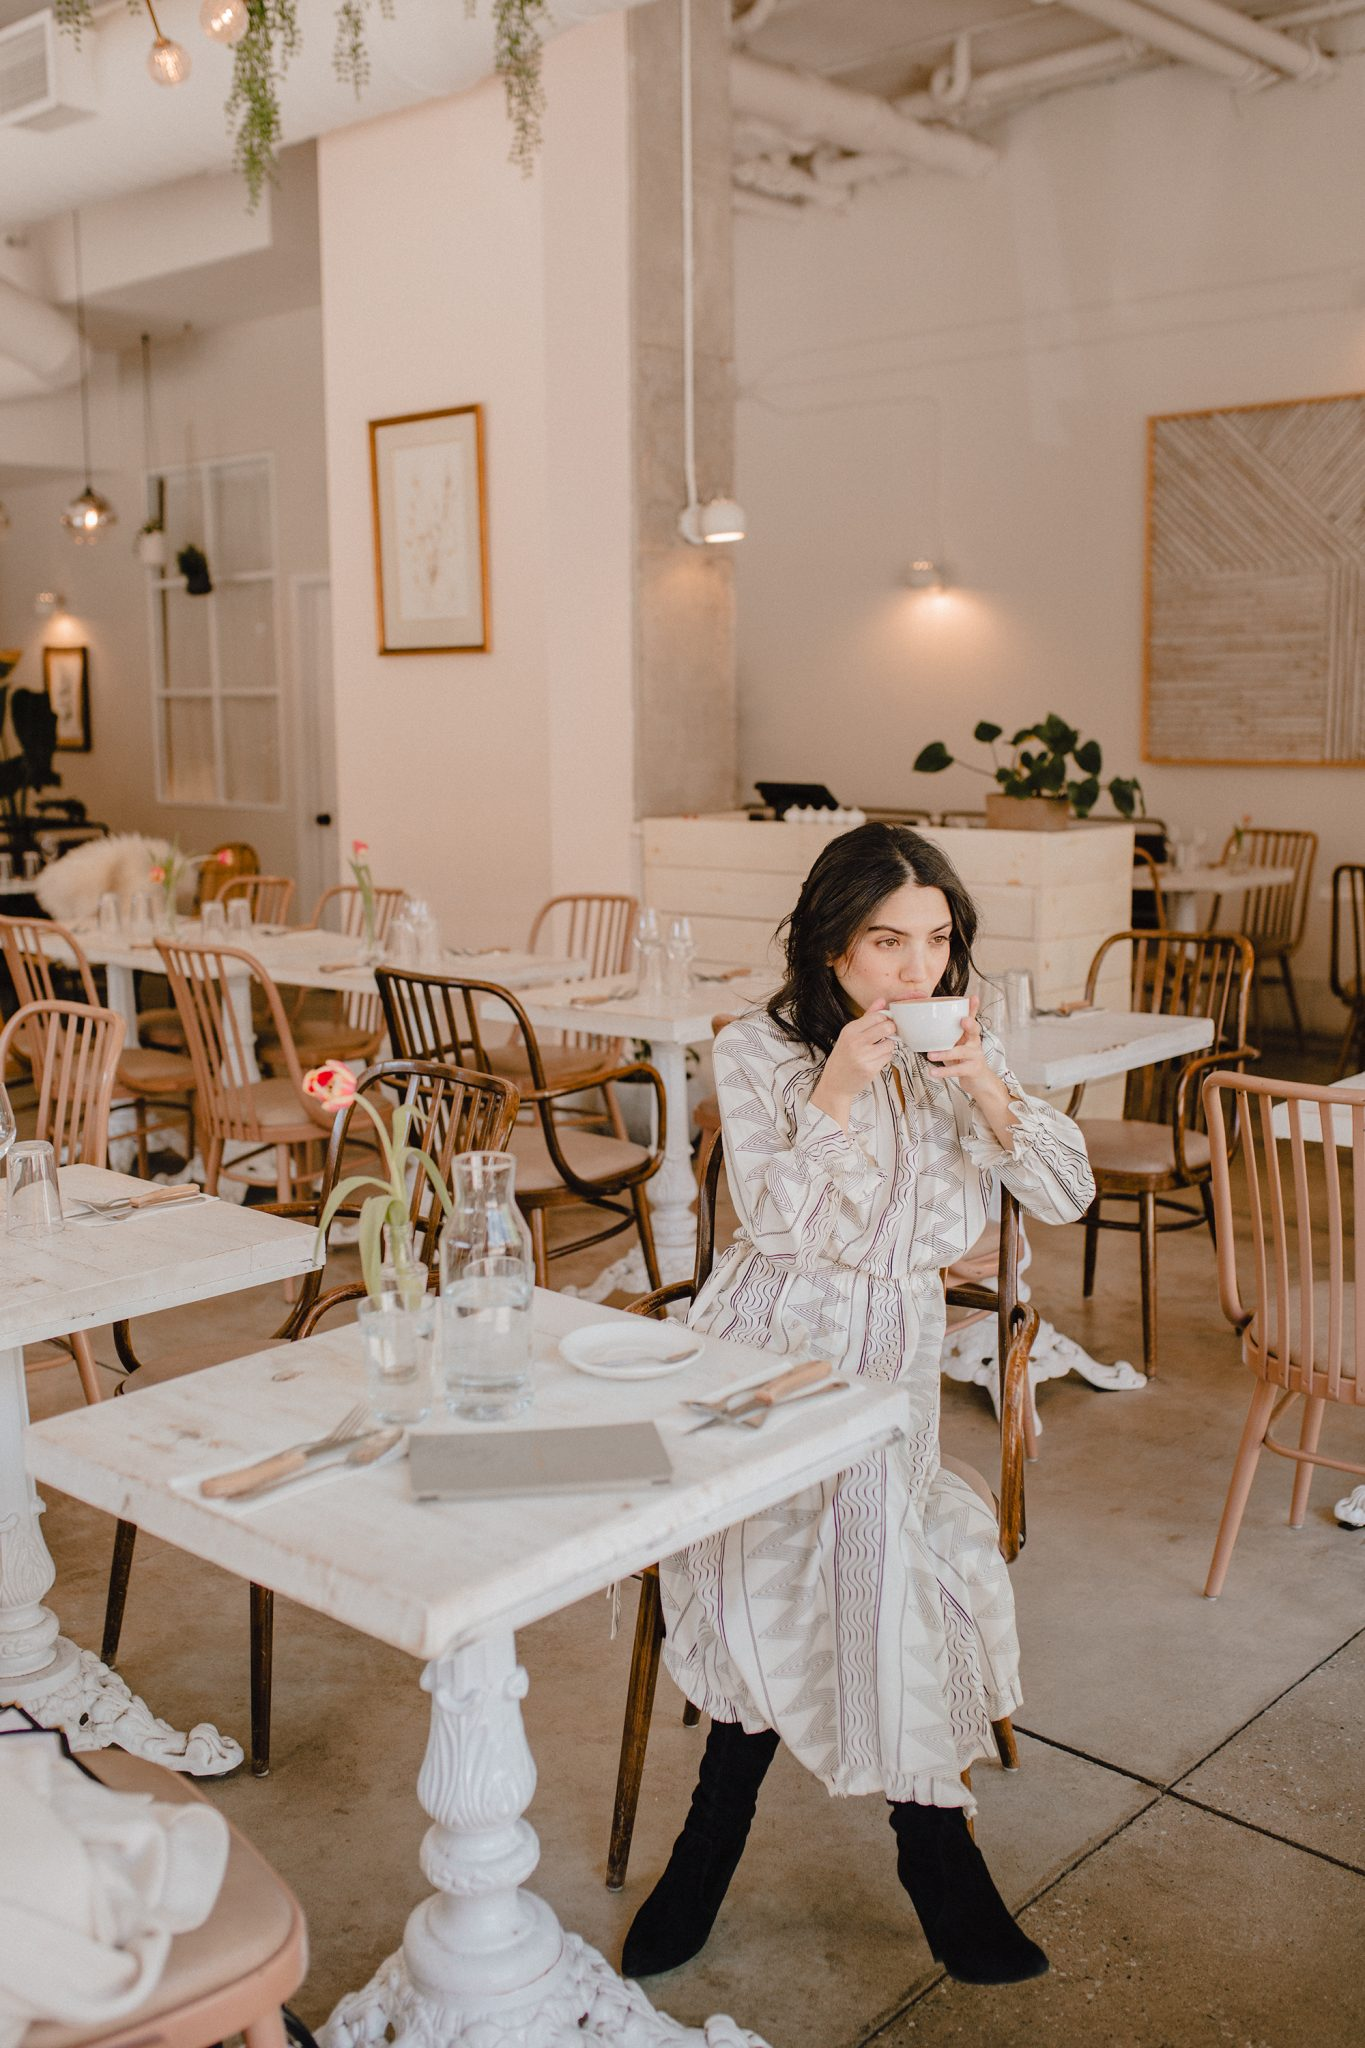 Melisse Restaurant, a healthy and beautiful restaurant